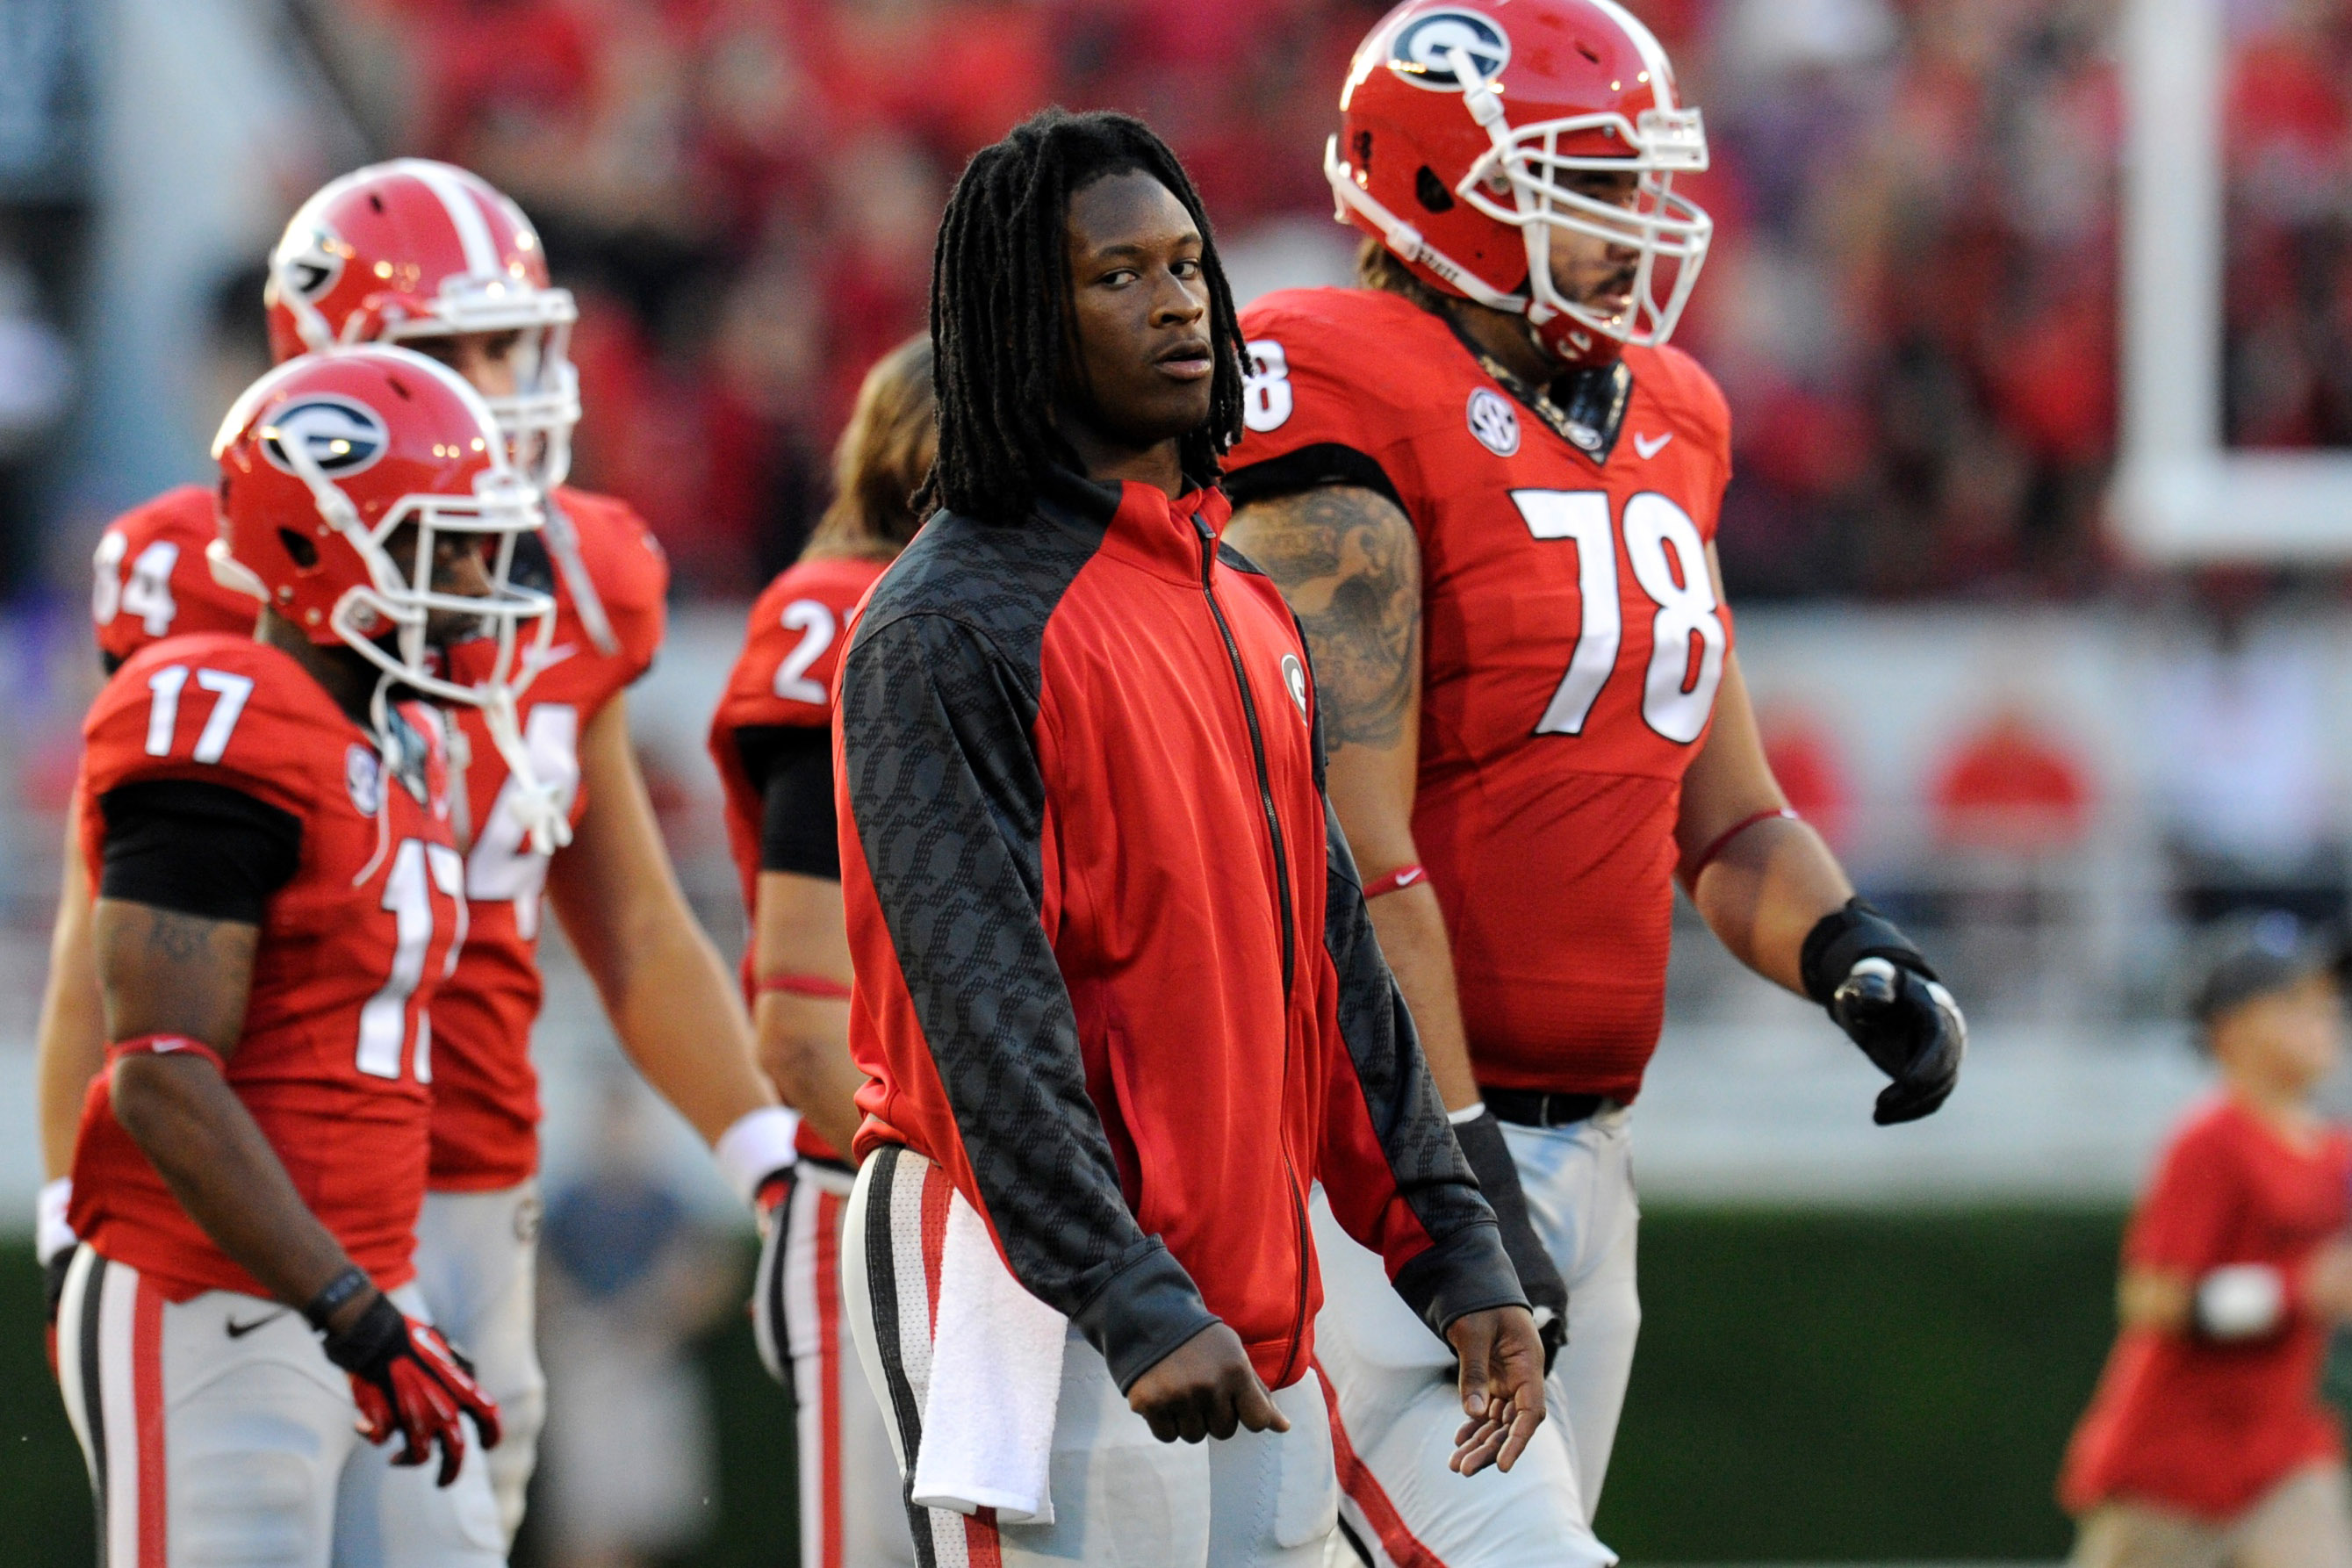 Georgia RB Todd Gurley injured his ankle in the second quarter against LSU. (USA Today)